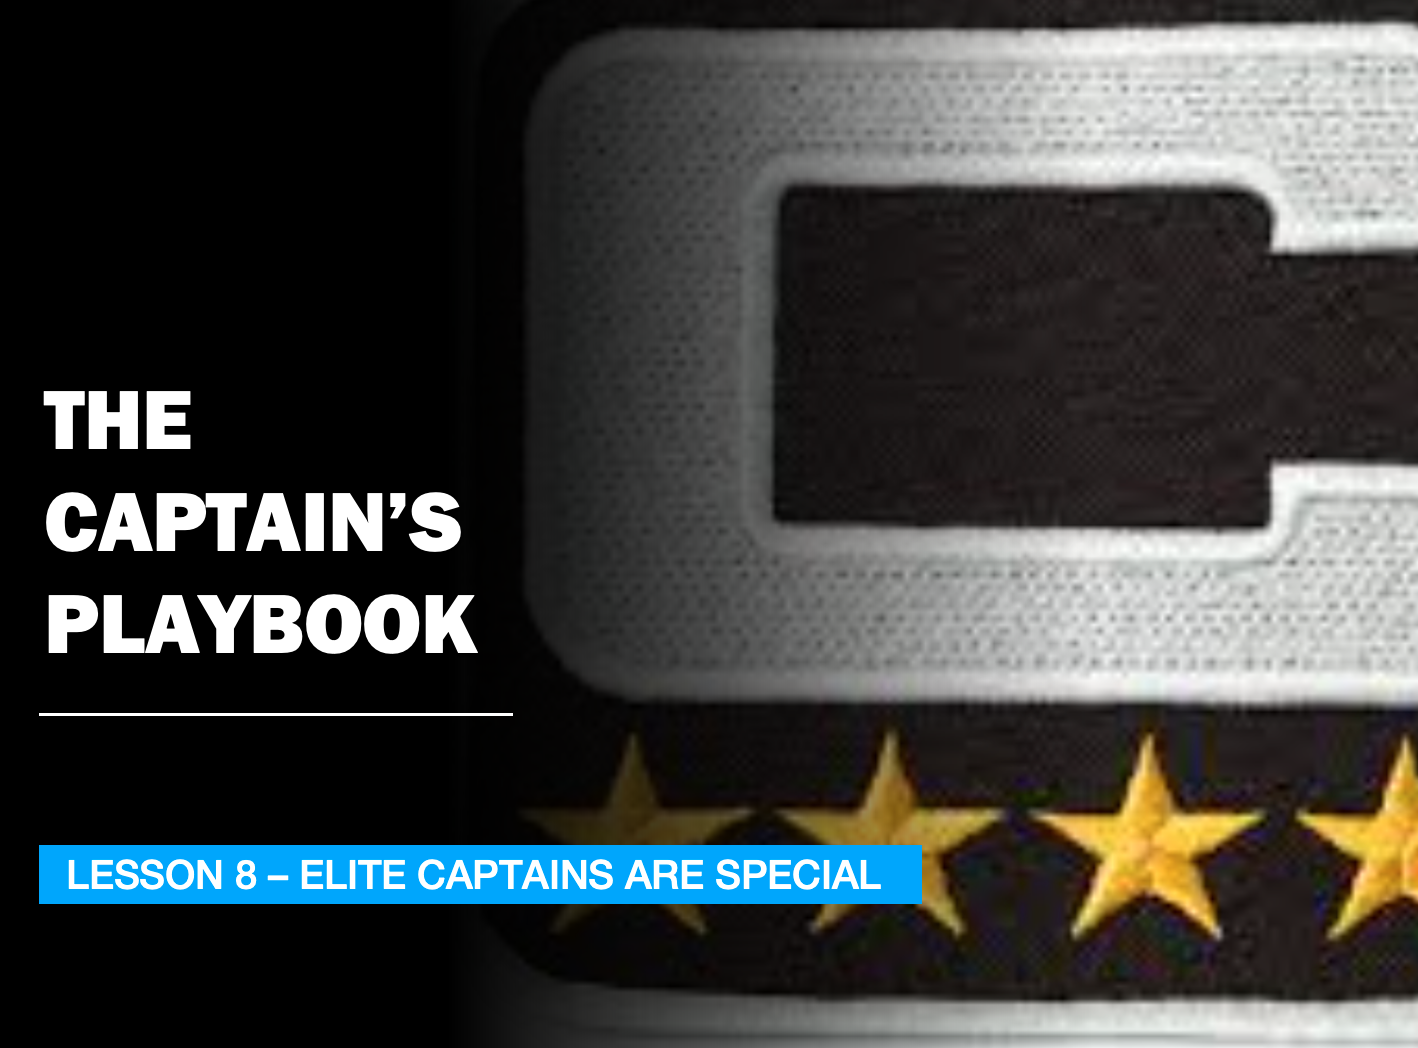 THE CAPTAIN'S PLAYBOOK - LESSON 8